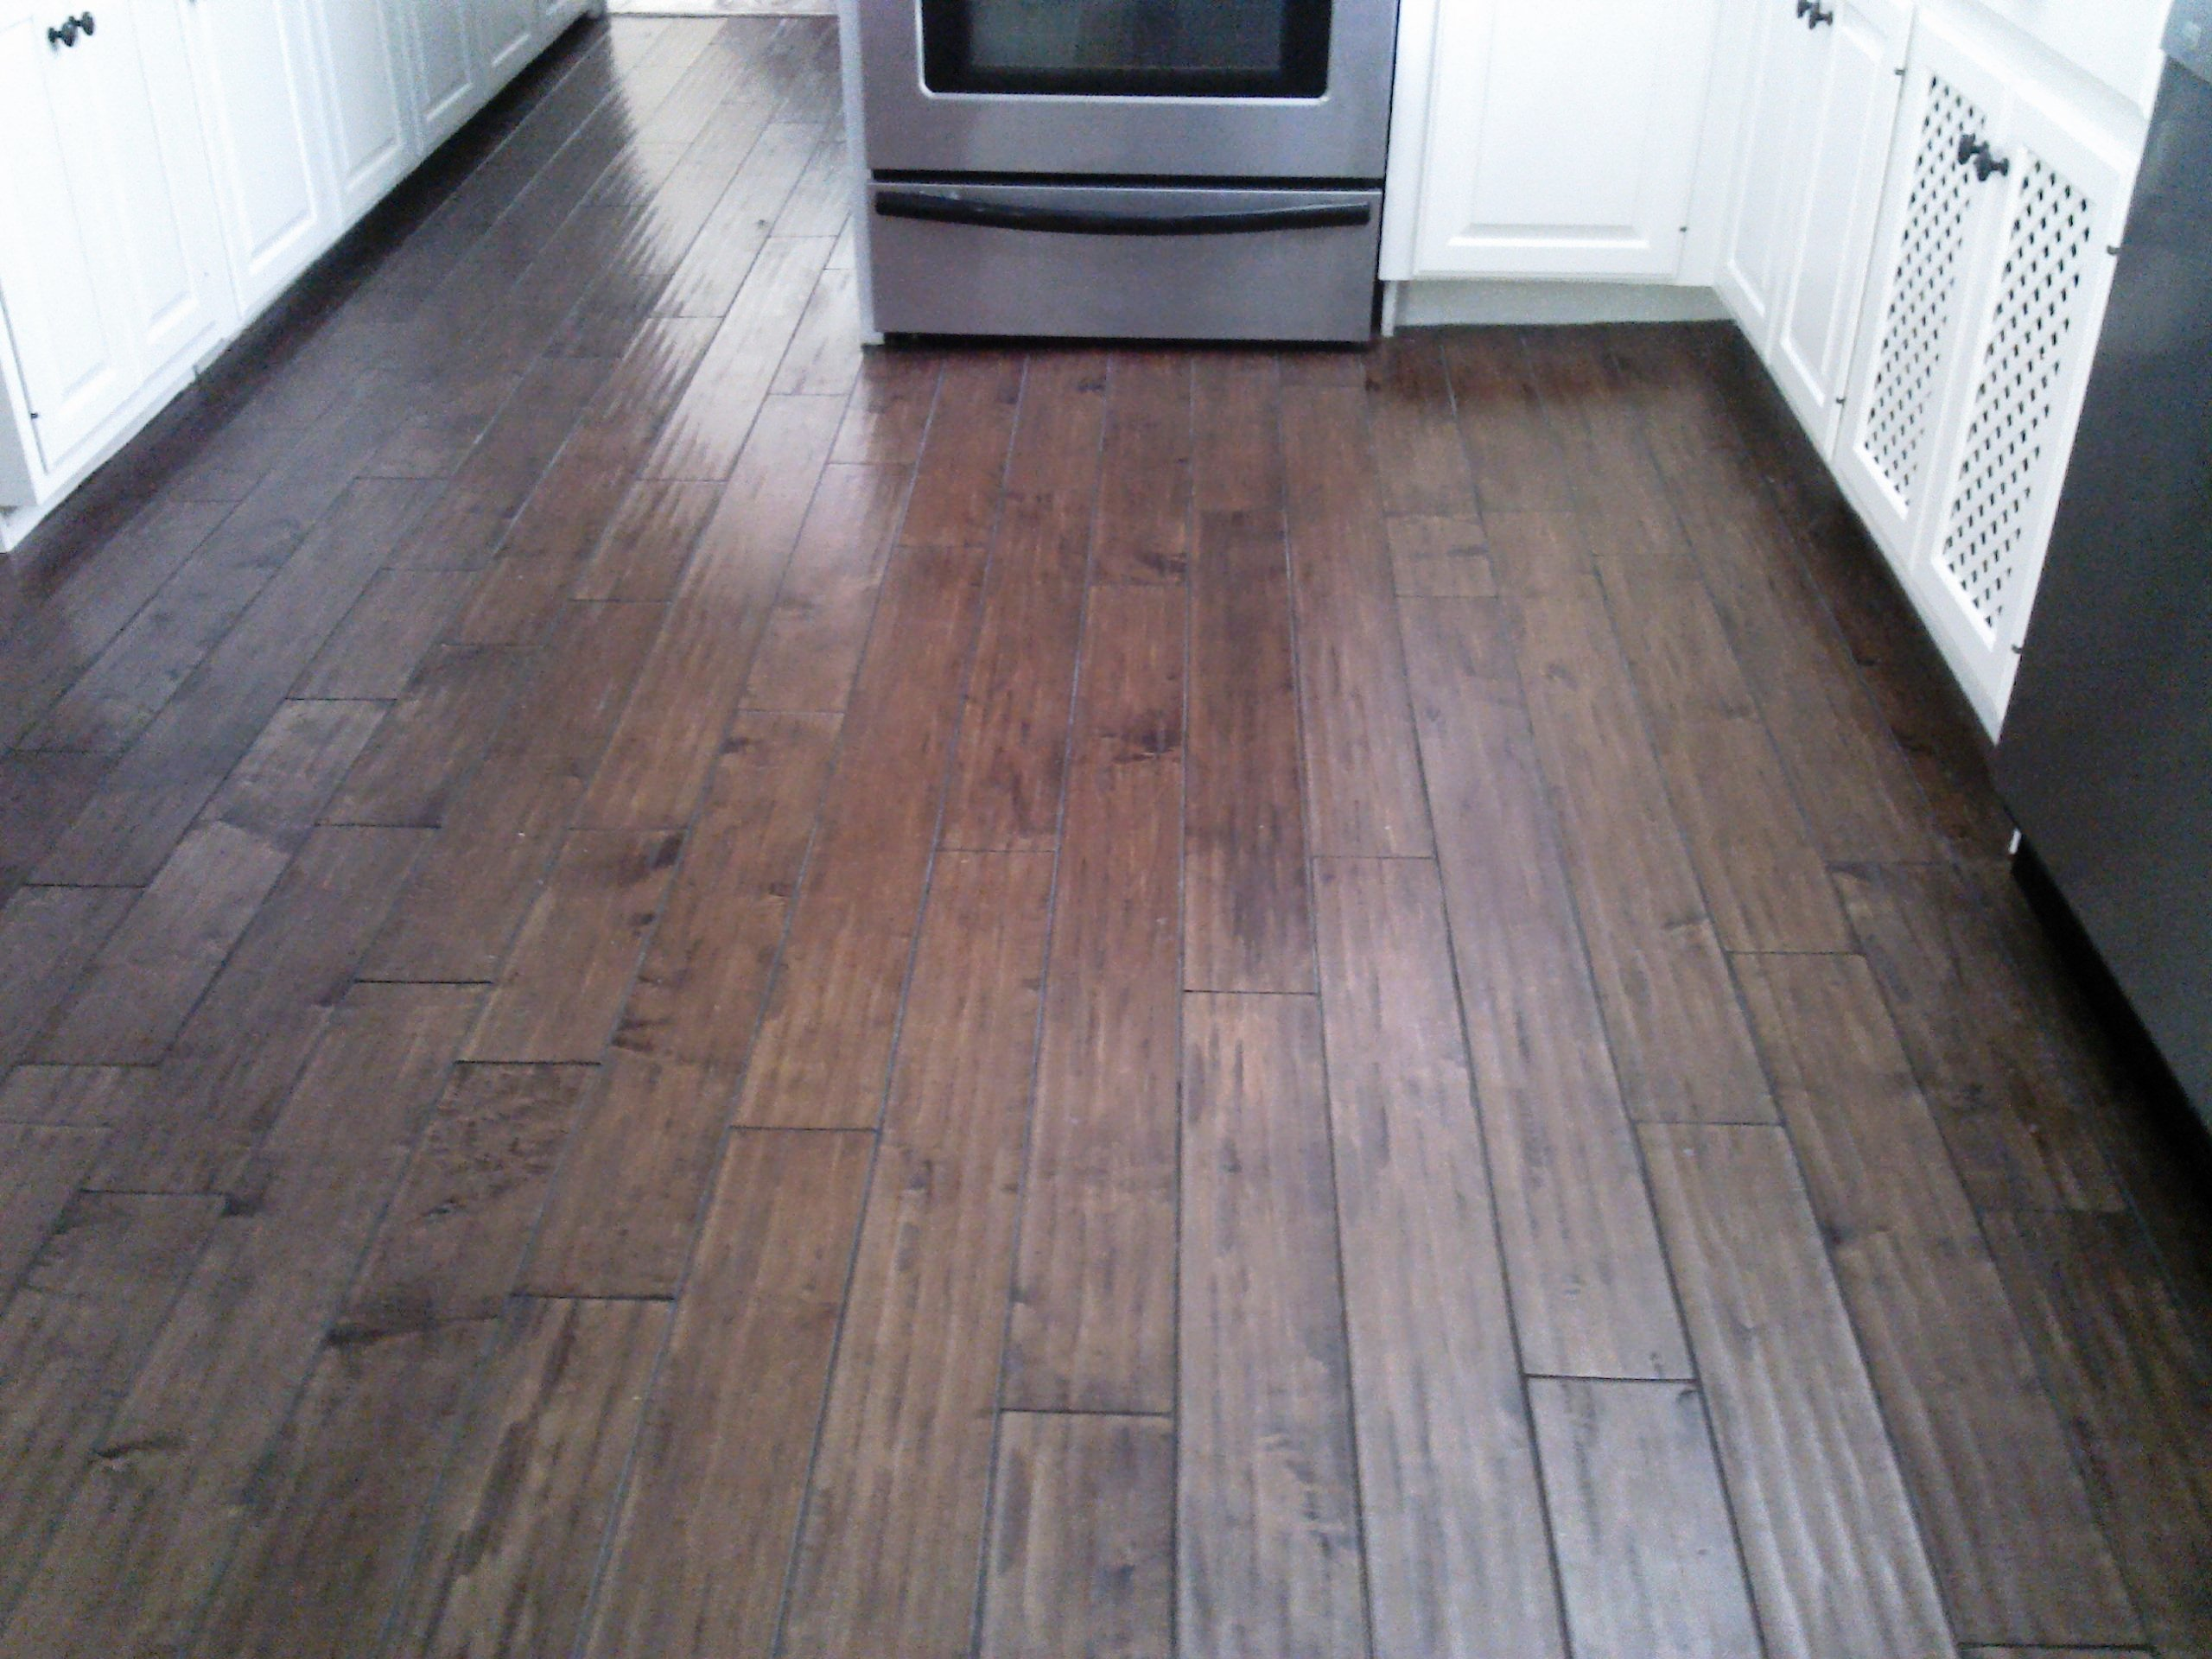 Cabinetry blog wood laminate floor dailygadgetfo Gallery